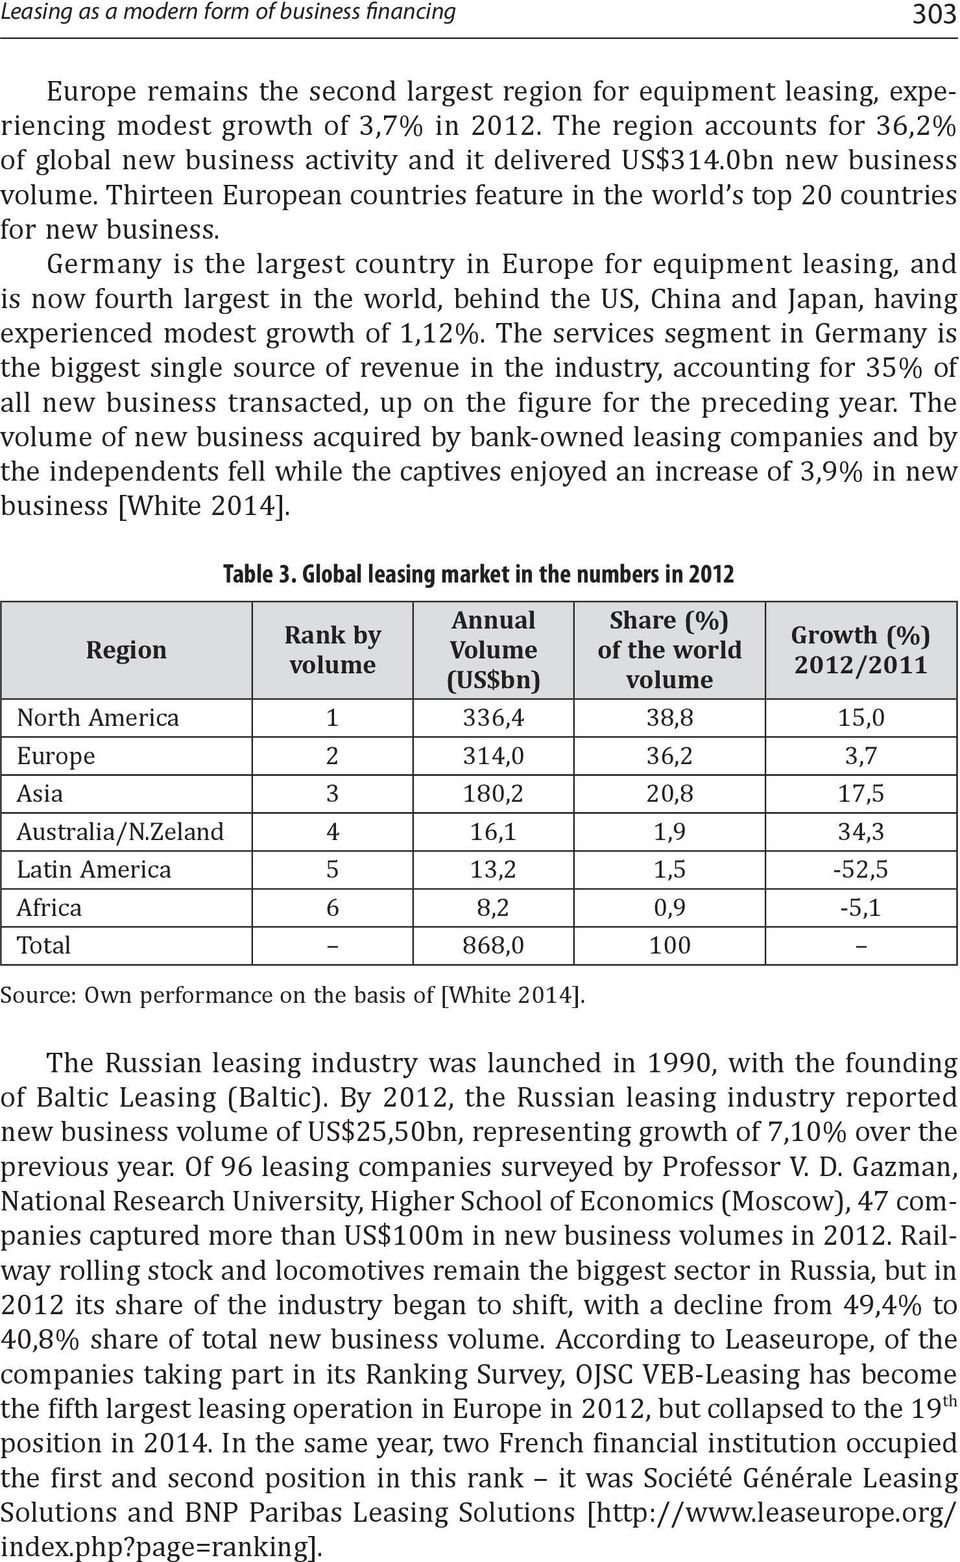 Germany is the largest country in Europe for equipment leasing, and is now fourth largest in the world, behind the US, China and Japan, having experienced modest growth of 1,12%.